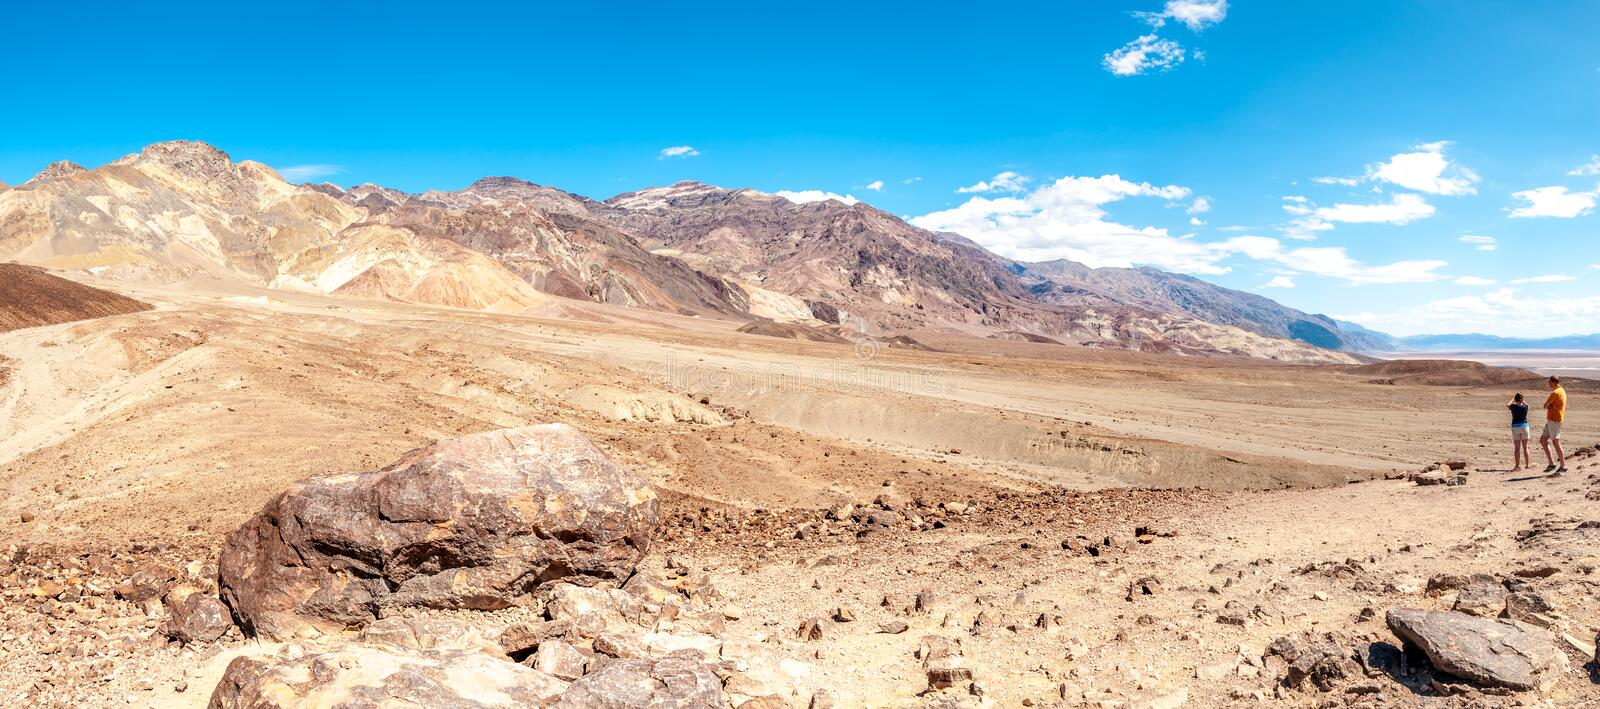 Mountains with Pyramid Peak in Death Valley royalty free stock image